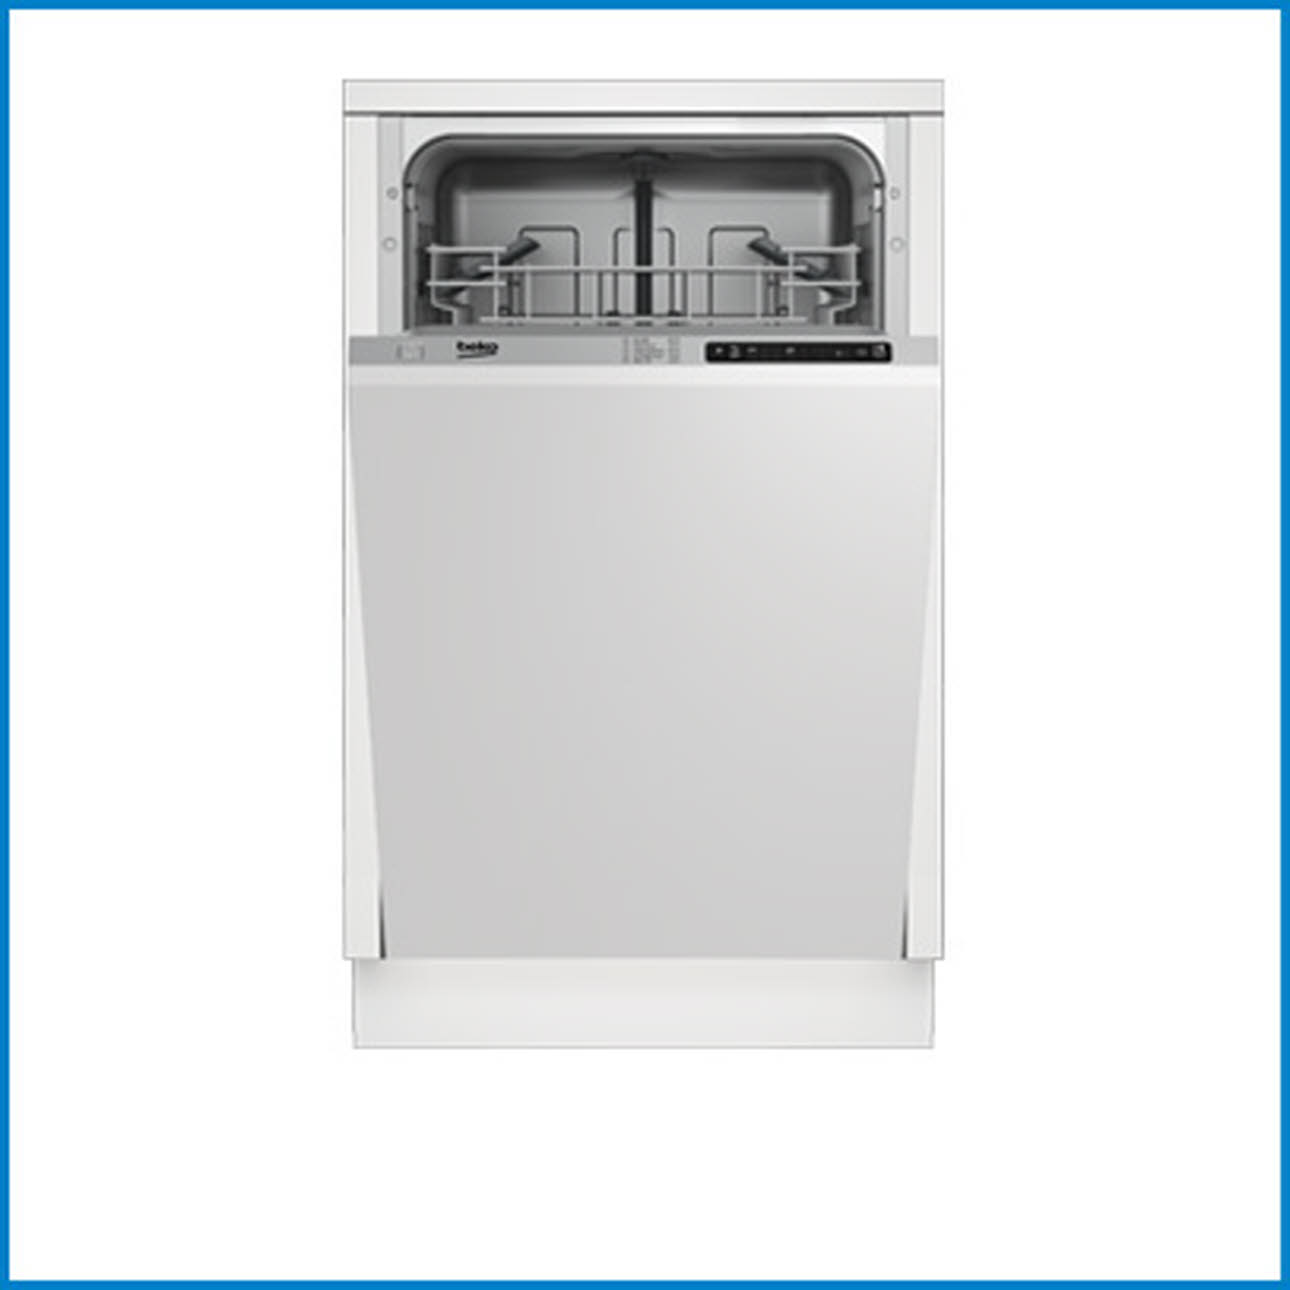 White Beko slimline dishwasher